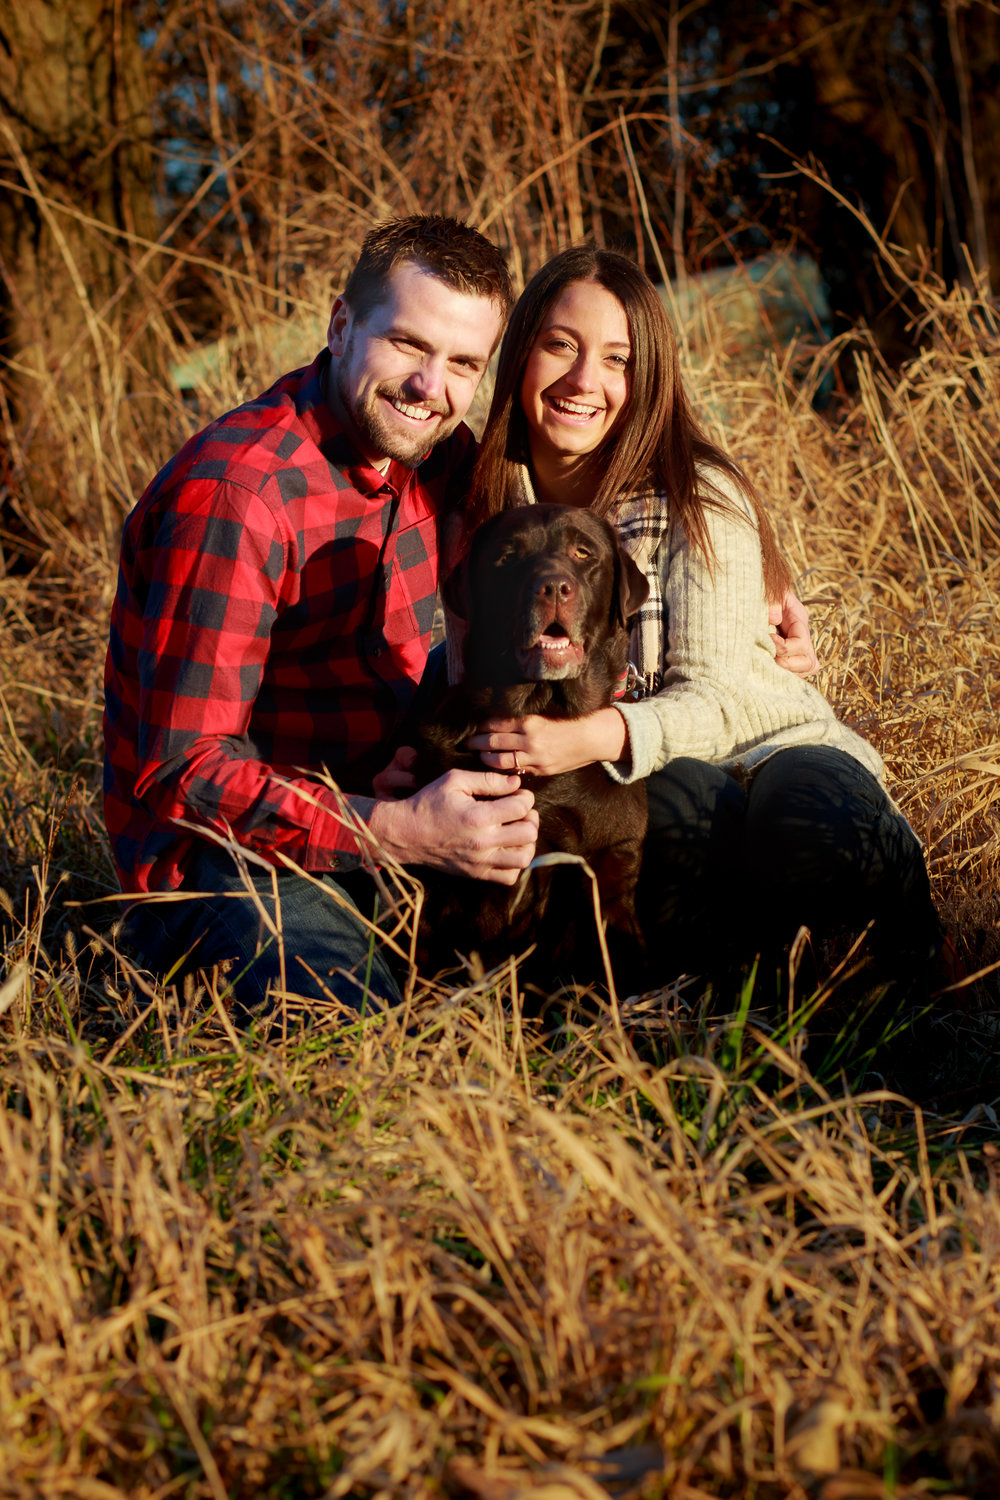 Professional_photographer_engagement_chicago_wedding_portrait_laura_suprenant_-7.jpg